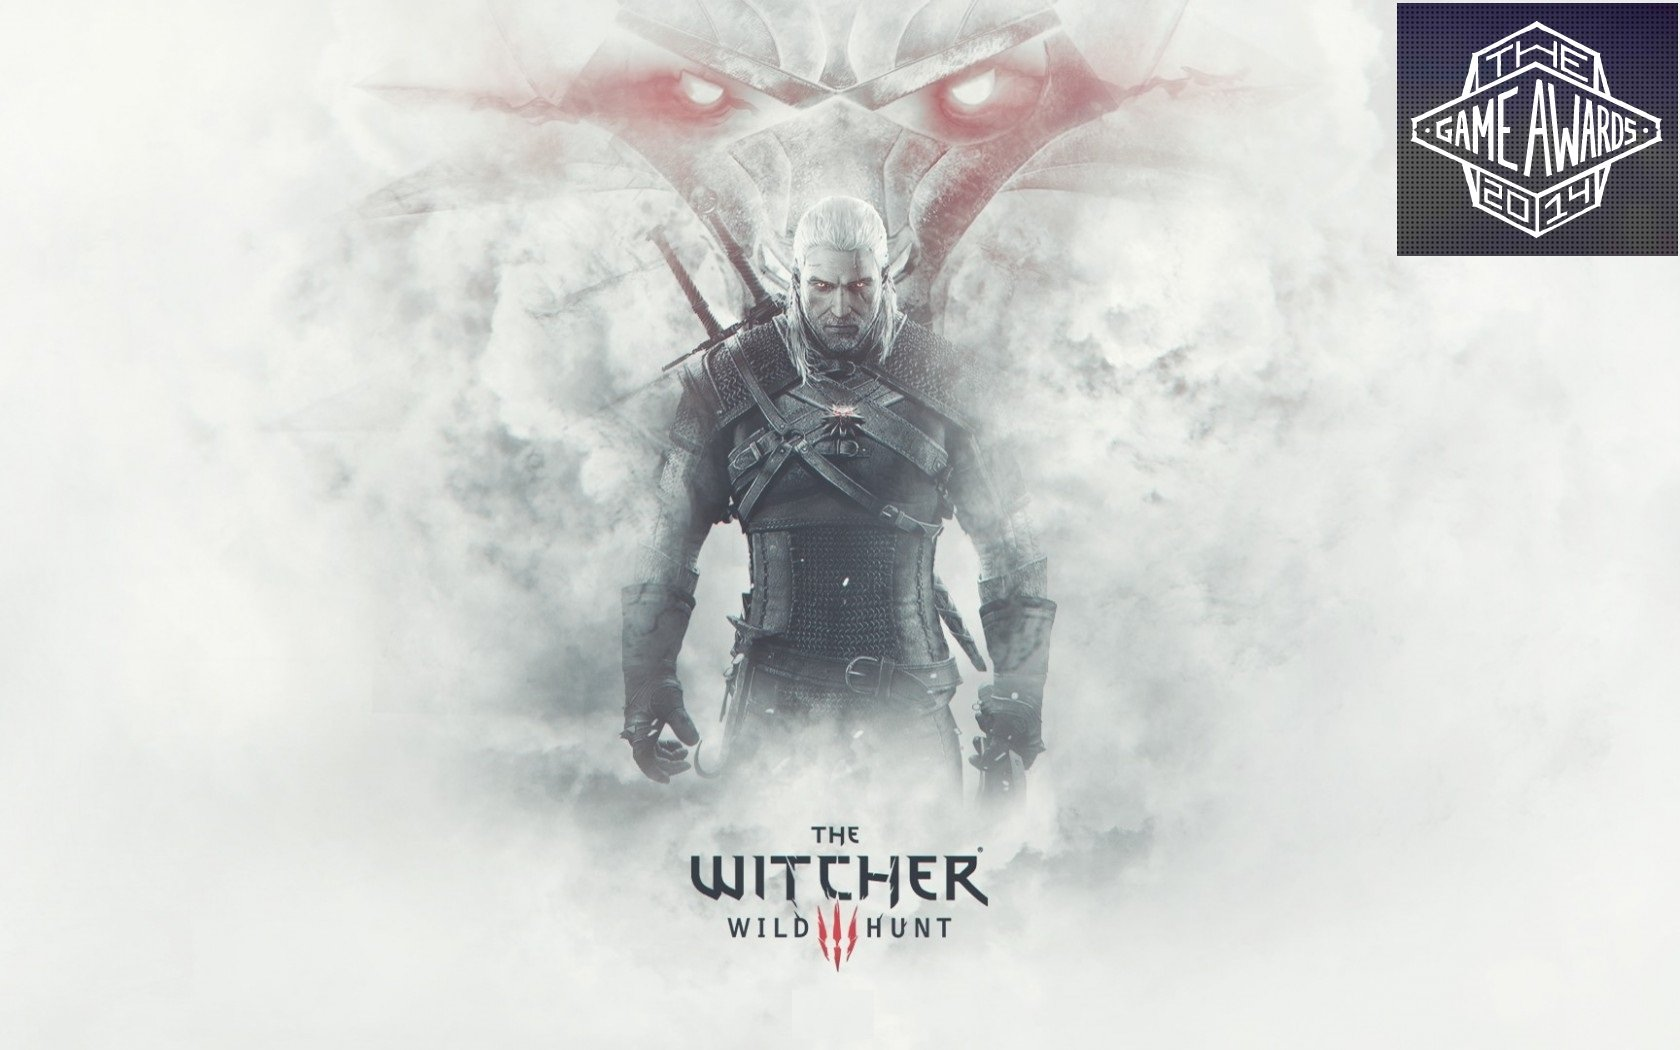 The Witcher 3: Wild Hunt на TGA 2014.   По голосованию на сайте TGA  Ведьмак стал самой ожидаемой игрой!!!       Нов .... - Изображение 1